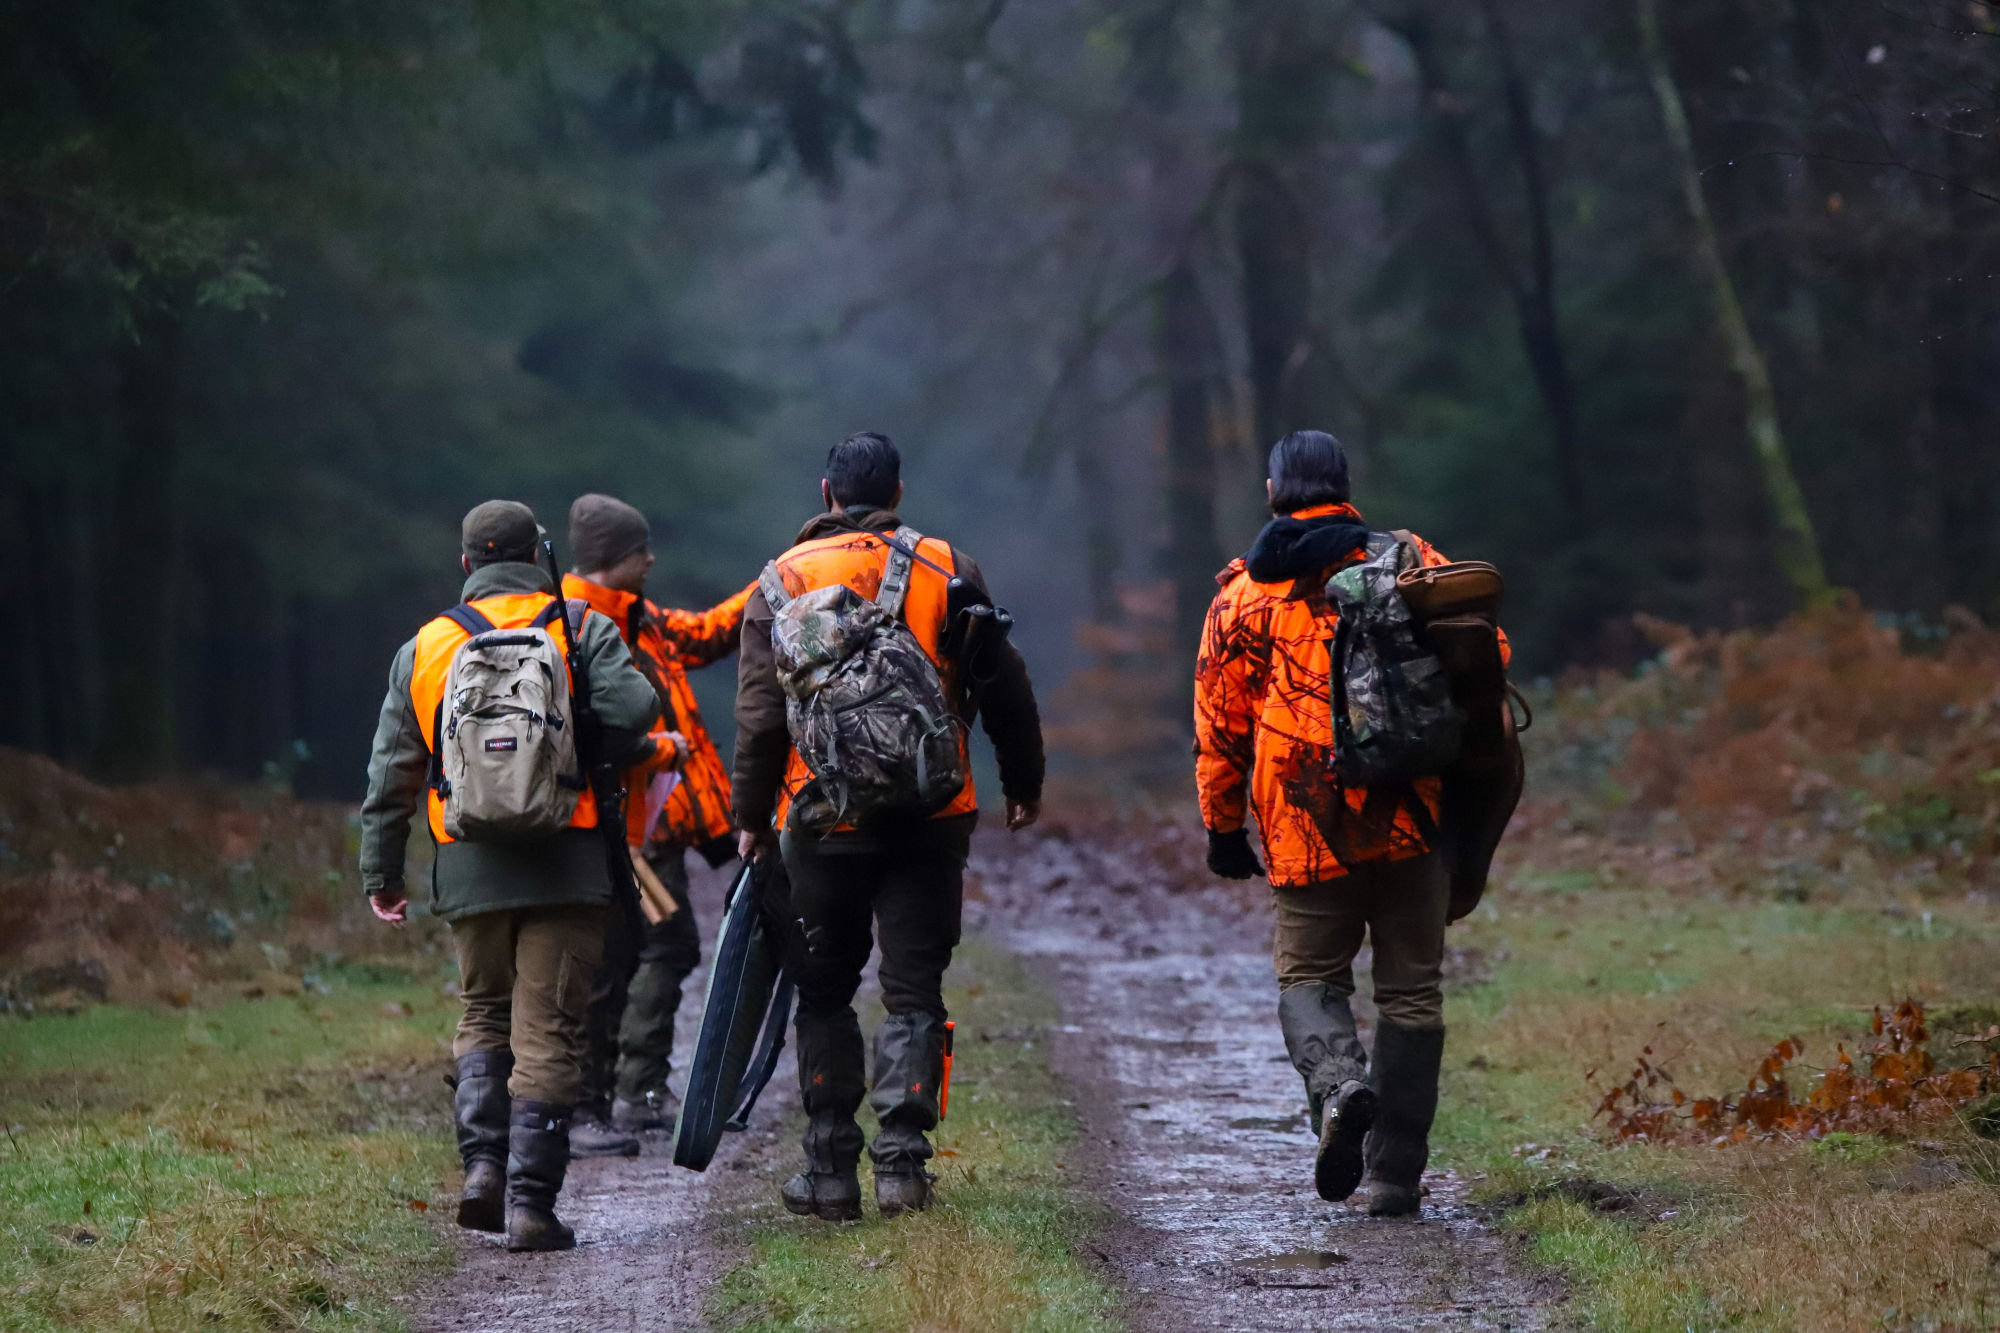 Join  us on a driven hunt in Belgium - Dimitri Hullebroek and other hunters after hunting wild boar